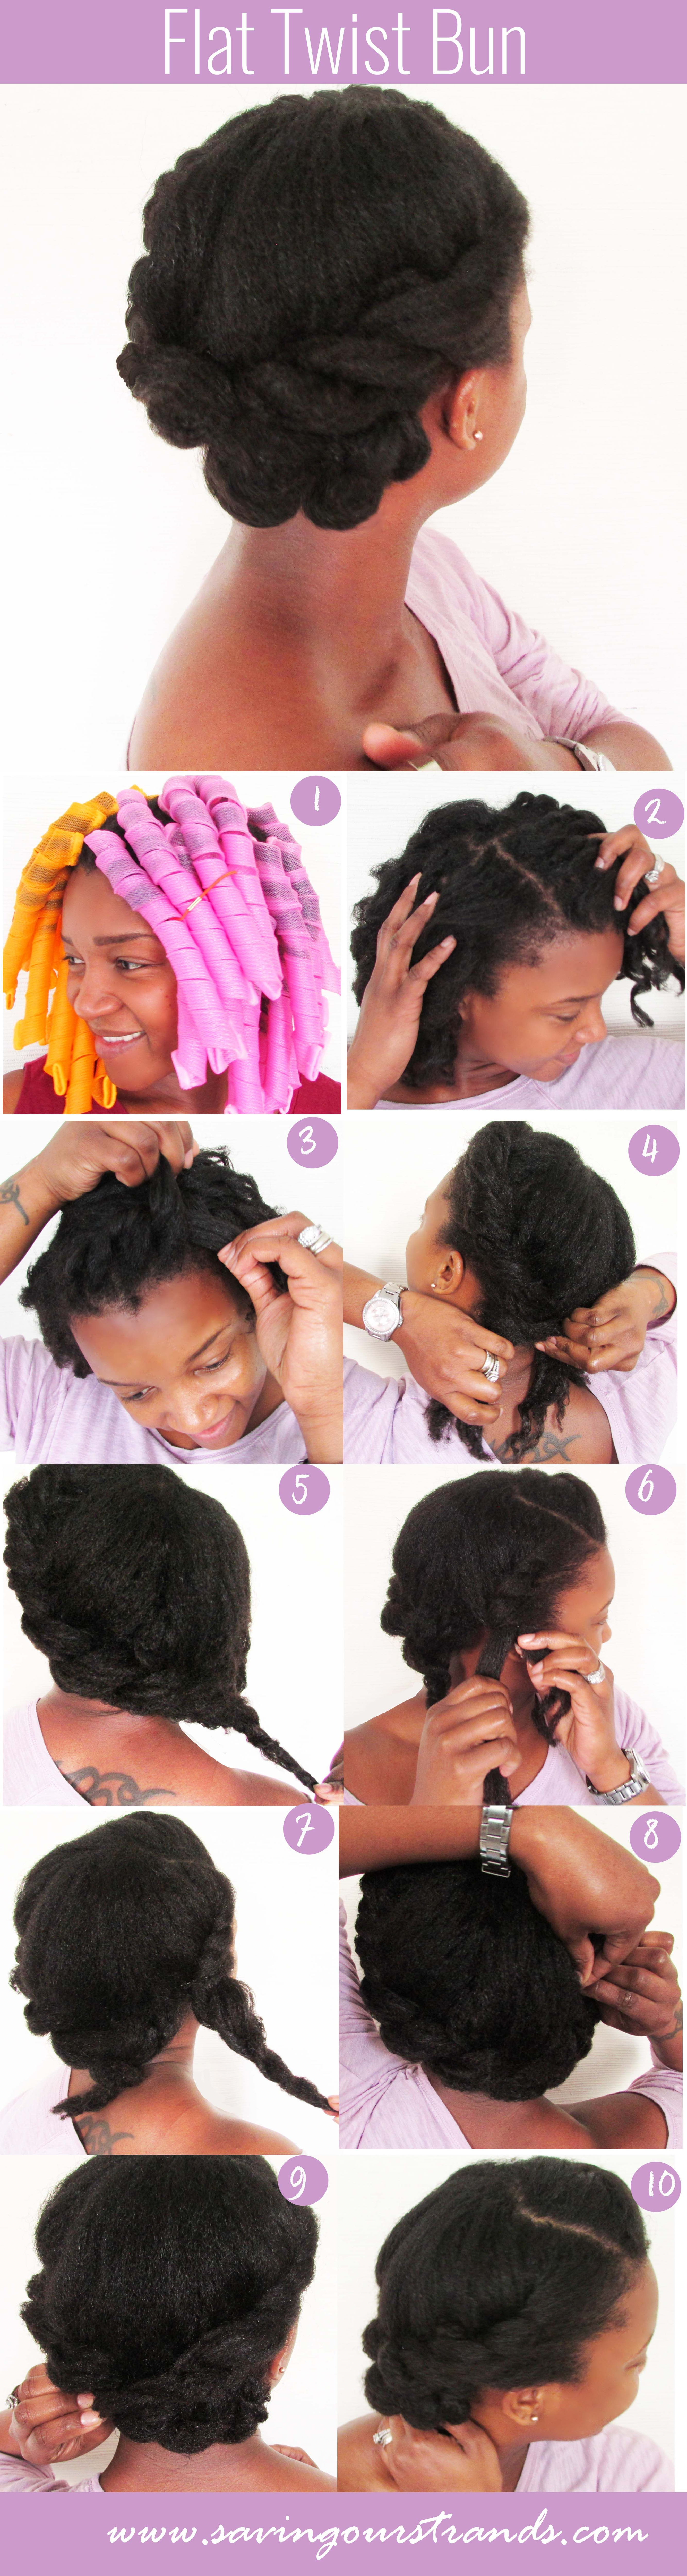 Soft And Romantic Updo Hairstyle Tutorial For Natural Hair Savingourstrand Hair Styles Natural Hair Bun Styles Romantic Updo Hairstyles